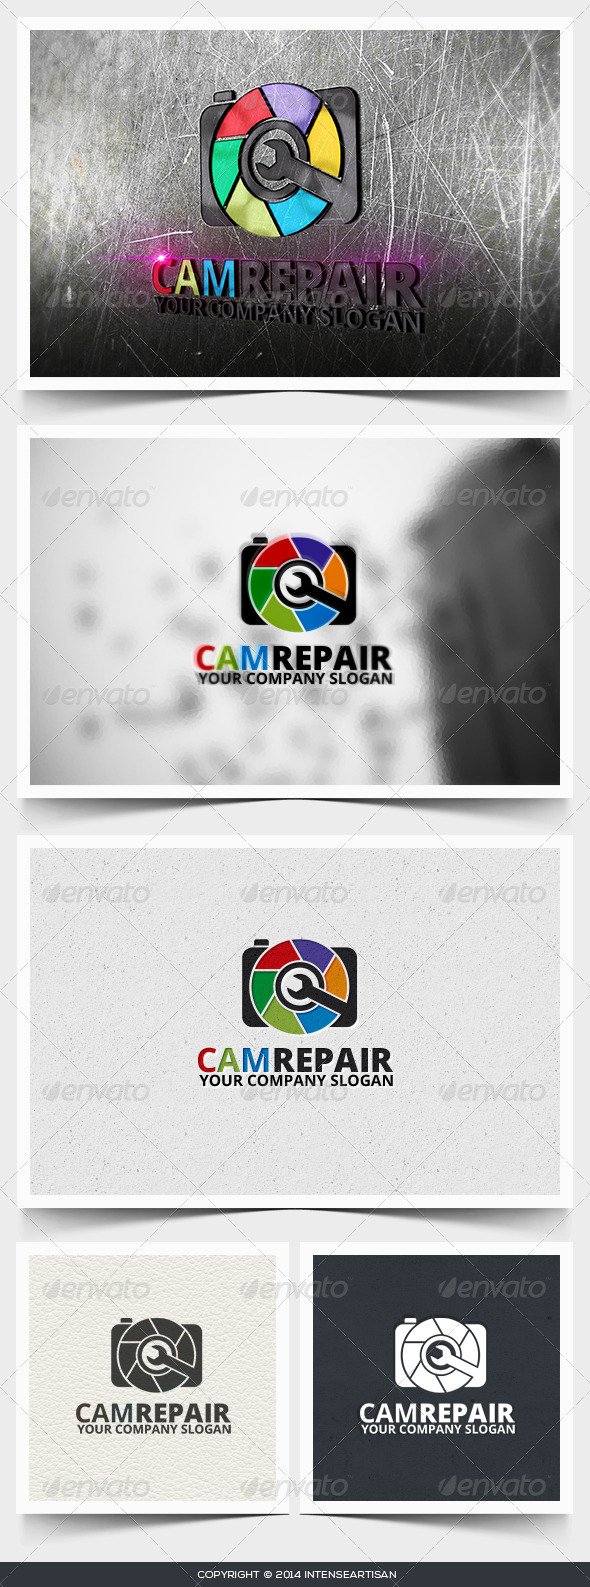 Camrepair Logo Template - Objects Logo Templates